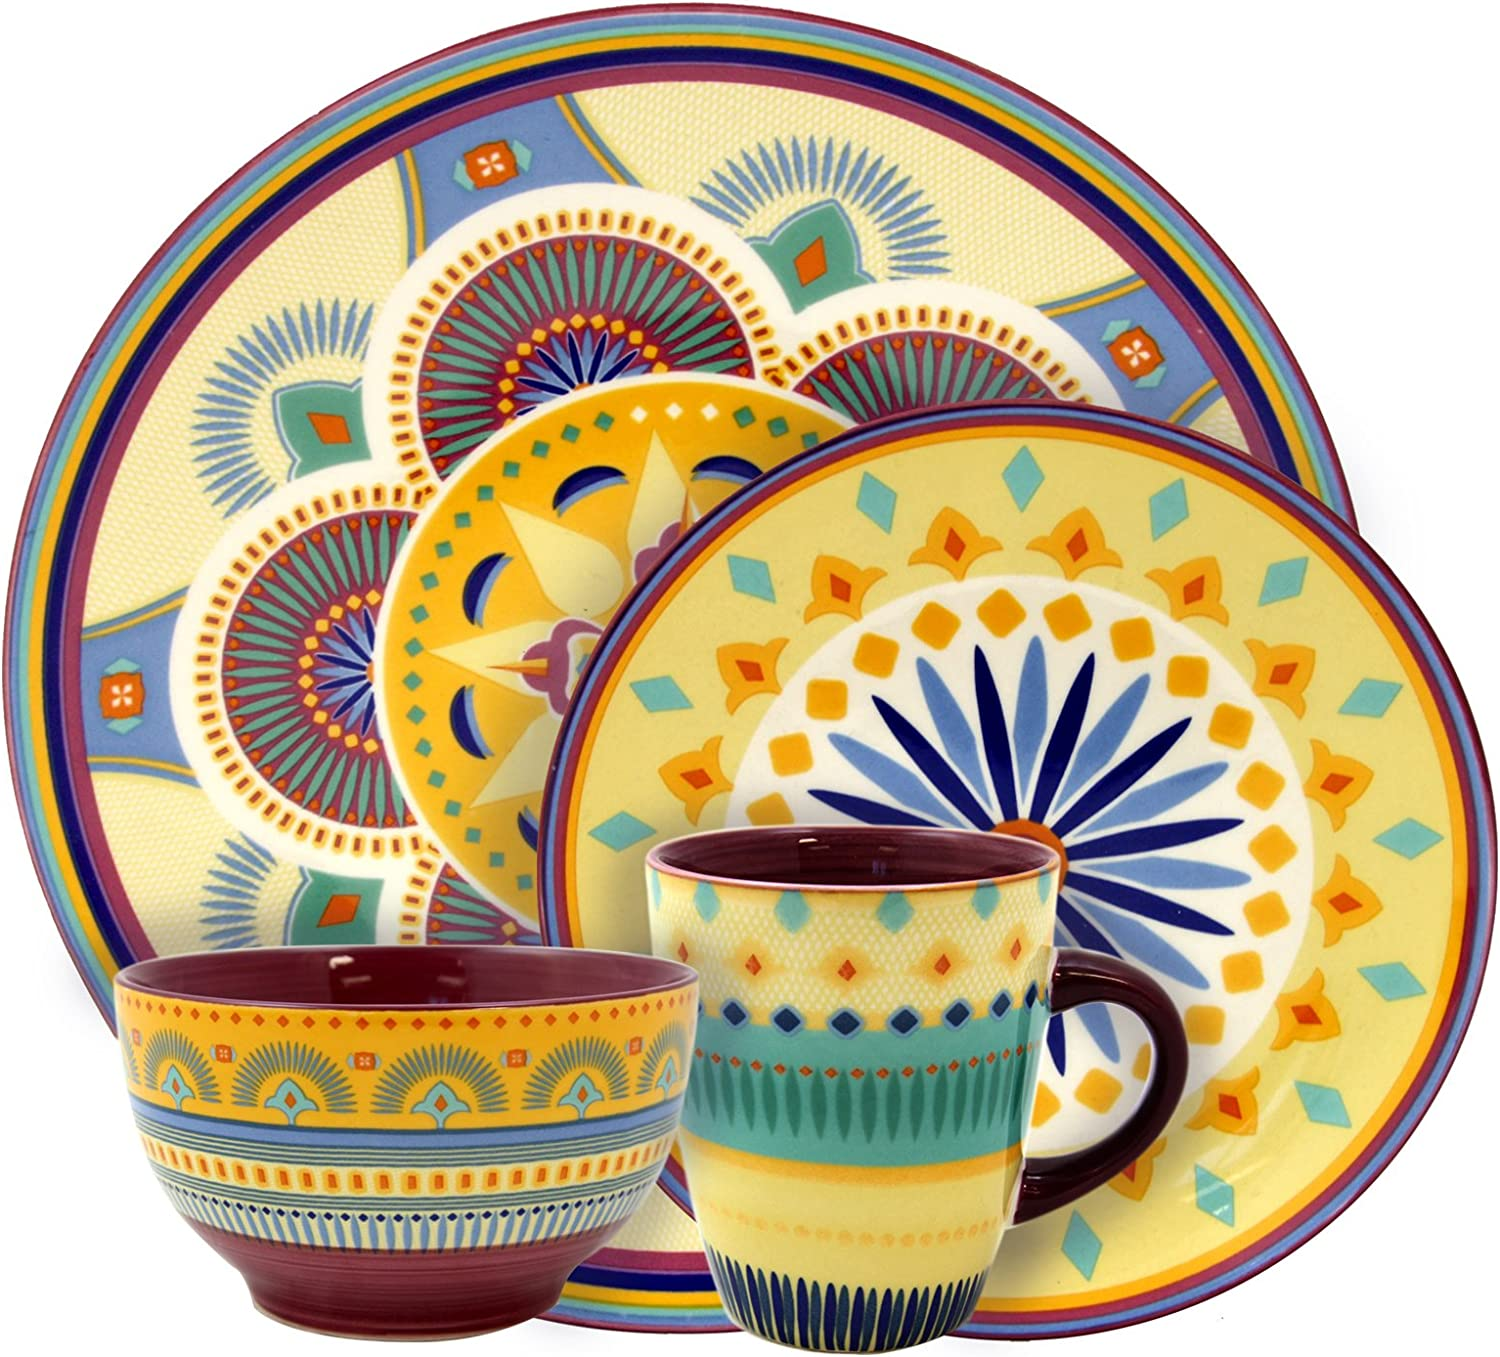 Elama Colorful Round Stoneware Pattern Dinnerware Dish Set, 16 Piece, Bright Yellow with Multicolor Accents